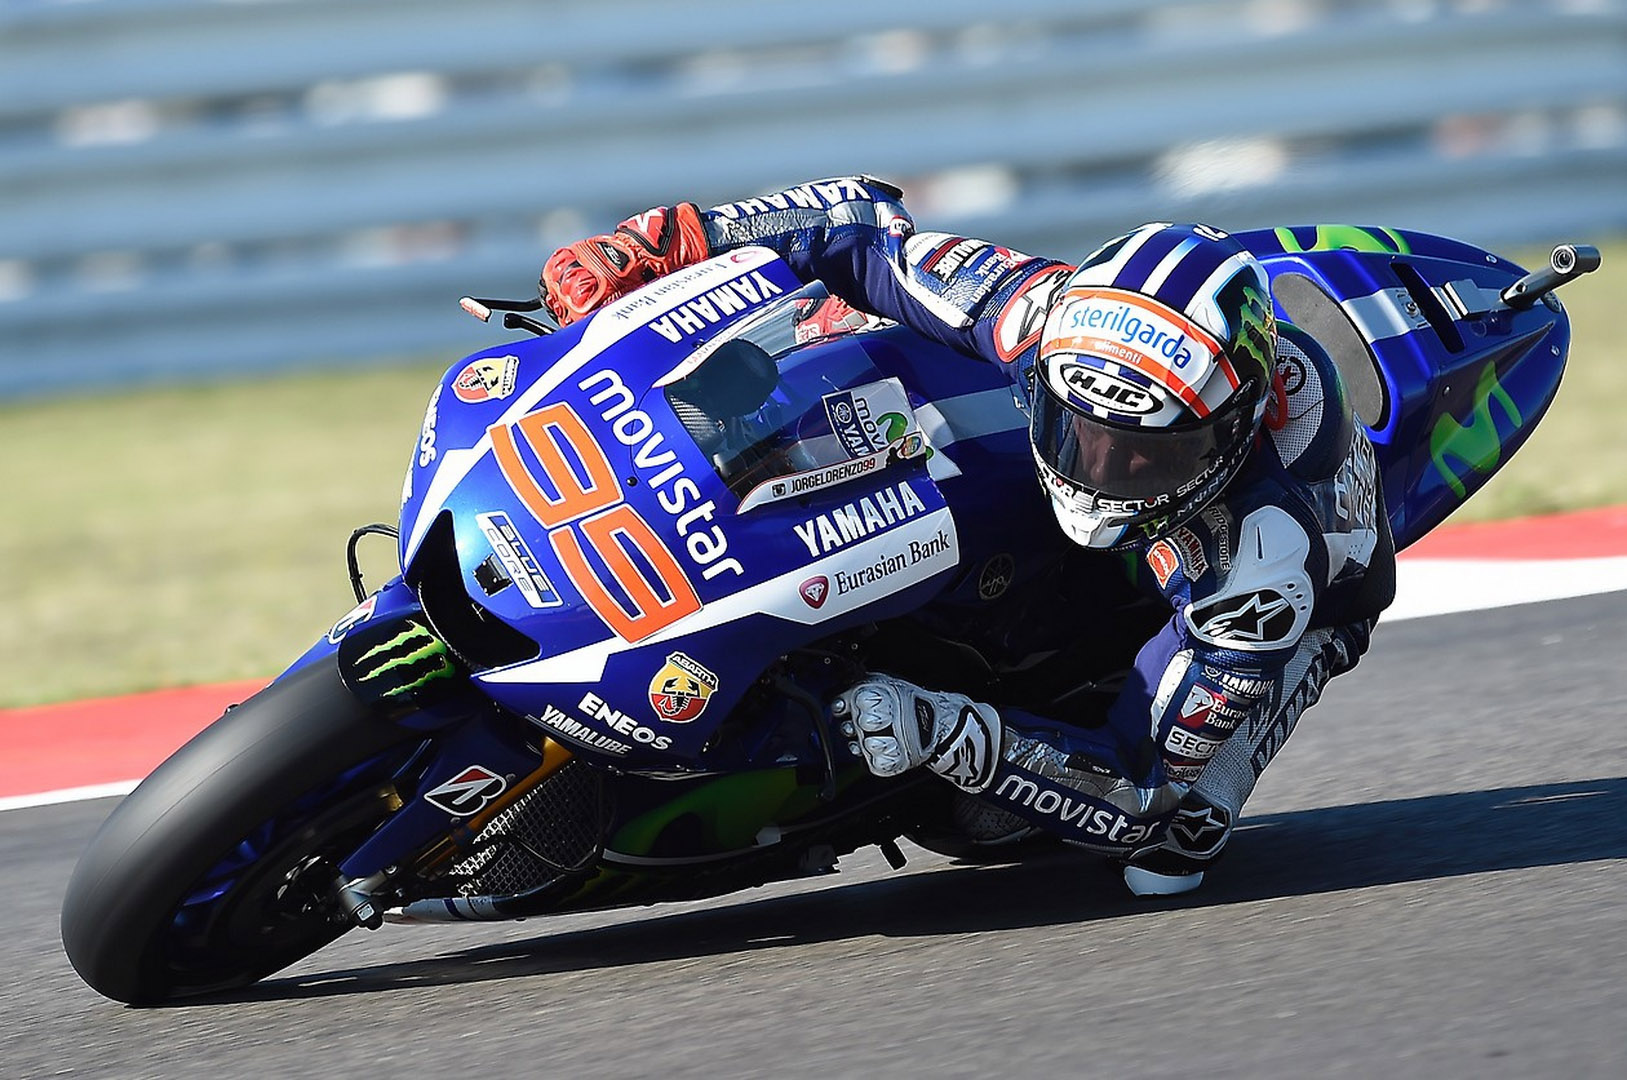 20150912_MotoGP_rd13_Misano_Q2_yfr_editorial_use_pictures_15.jpg